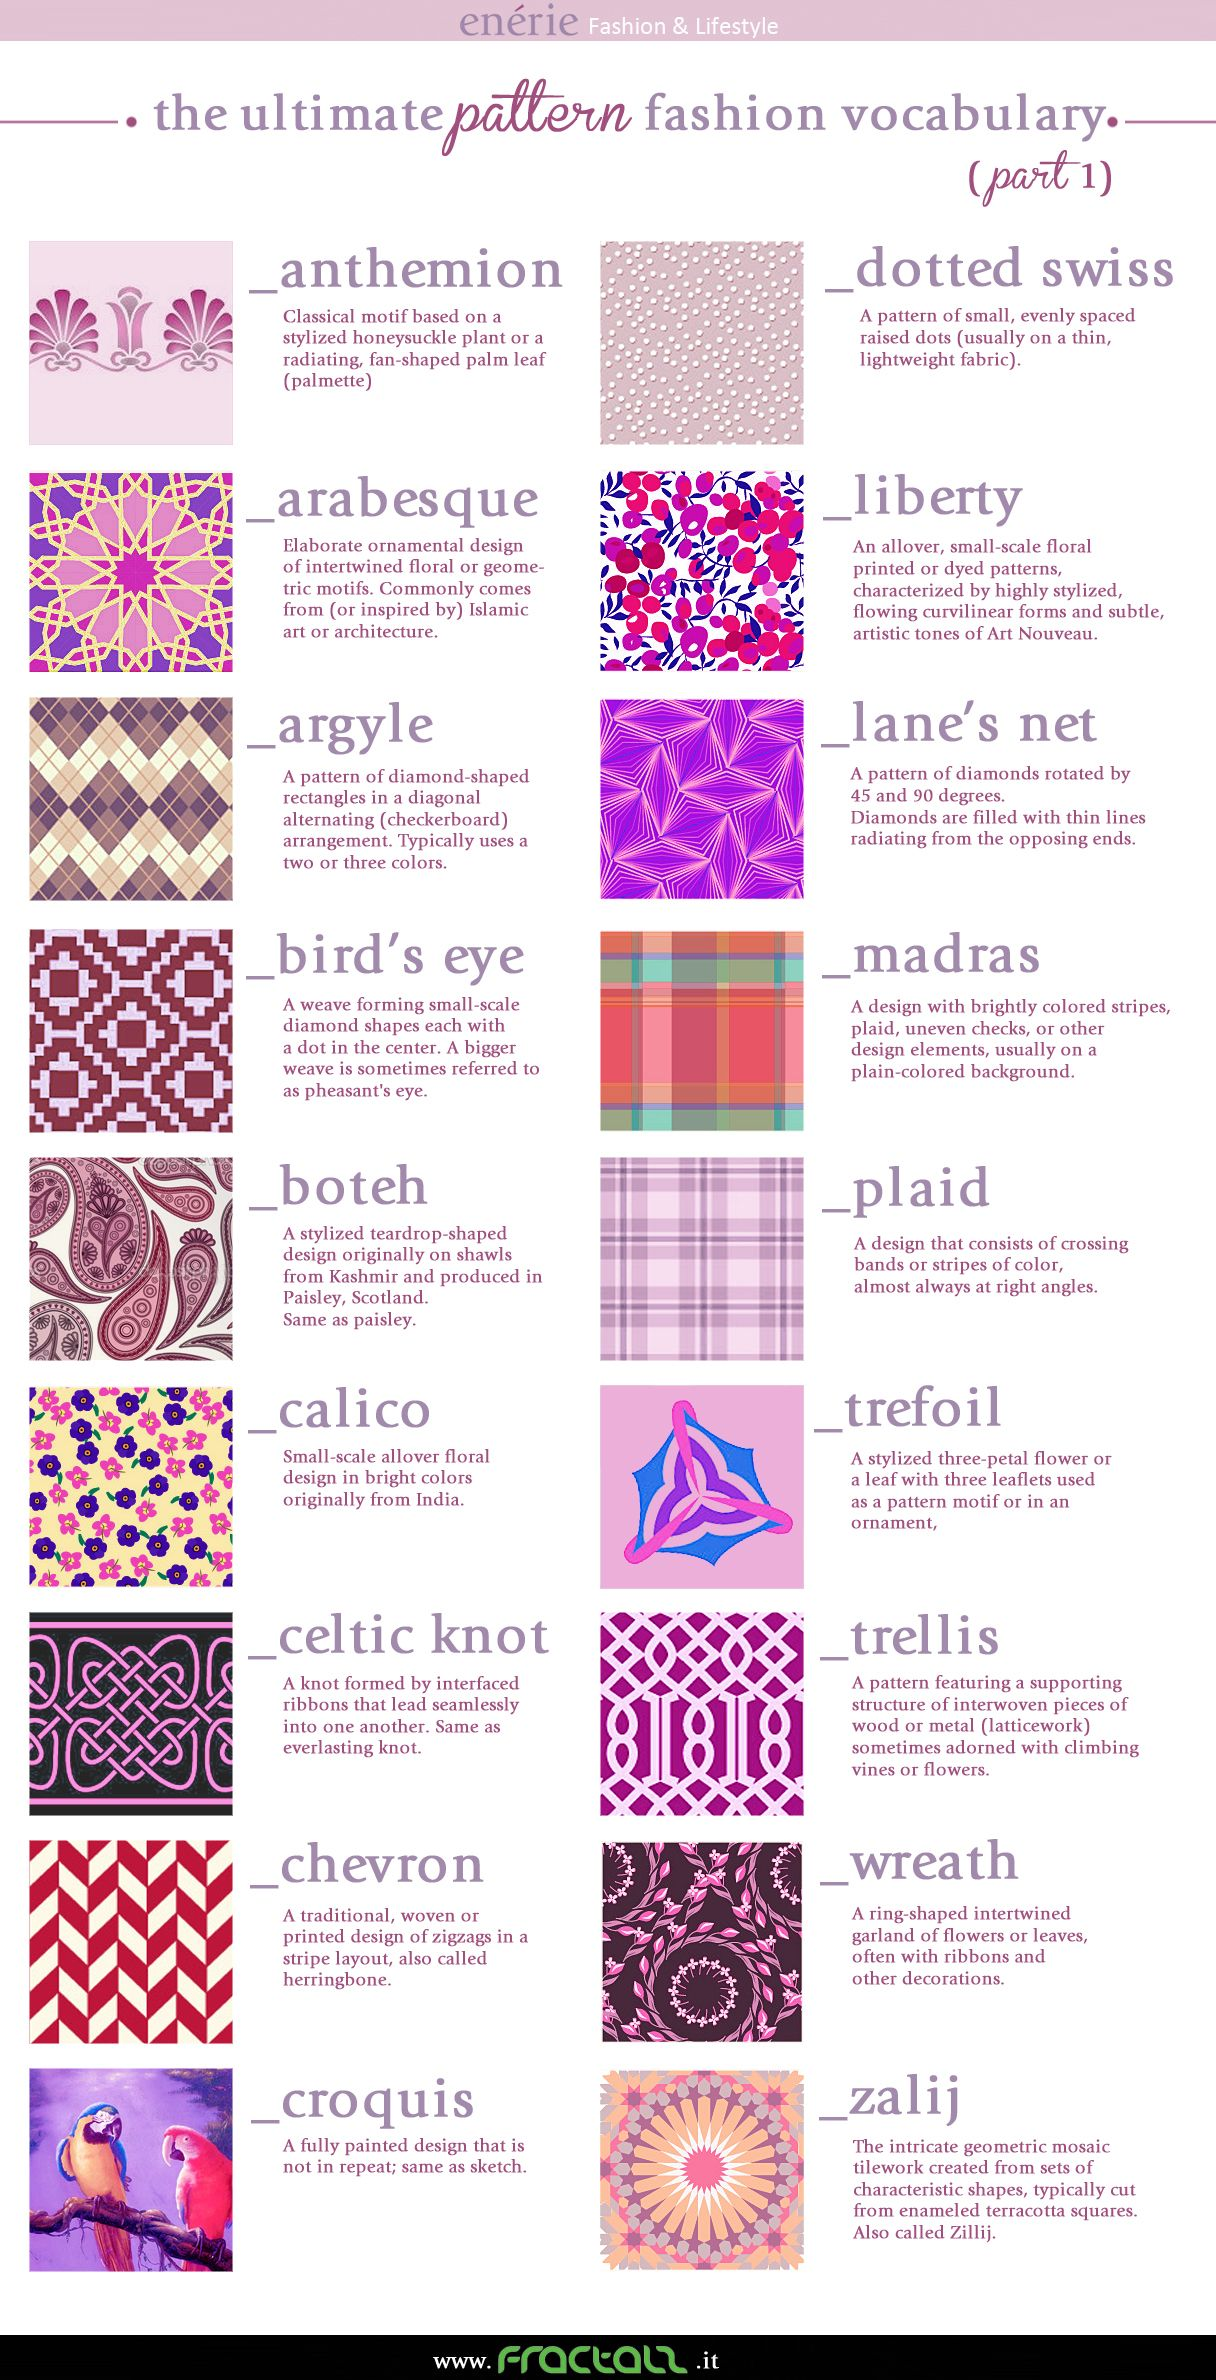 Fashion Terms on Pinterest  Fashion Vocabulary Pattern Fashion and Dress Types